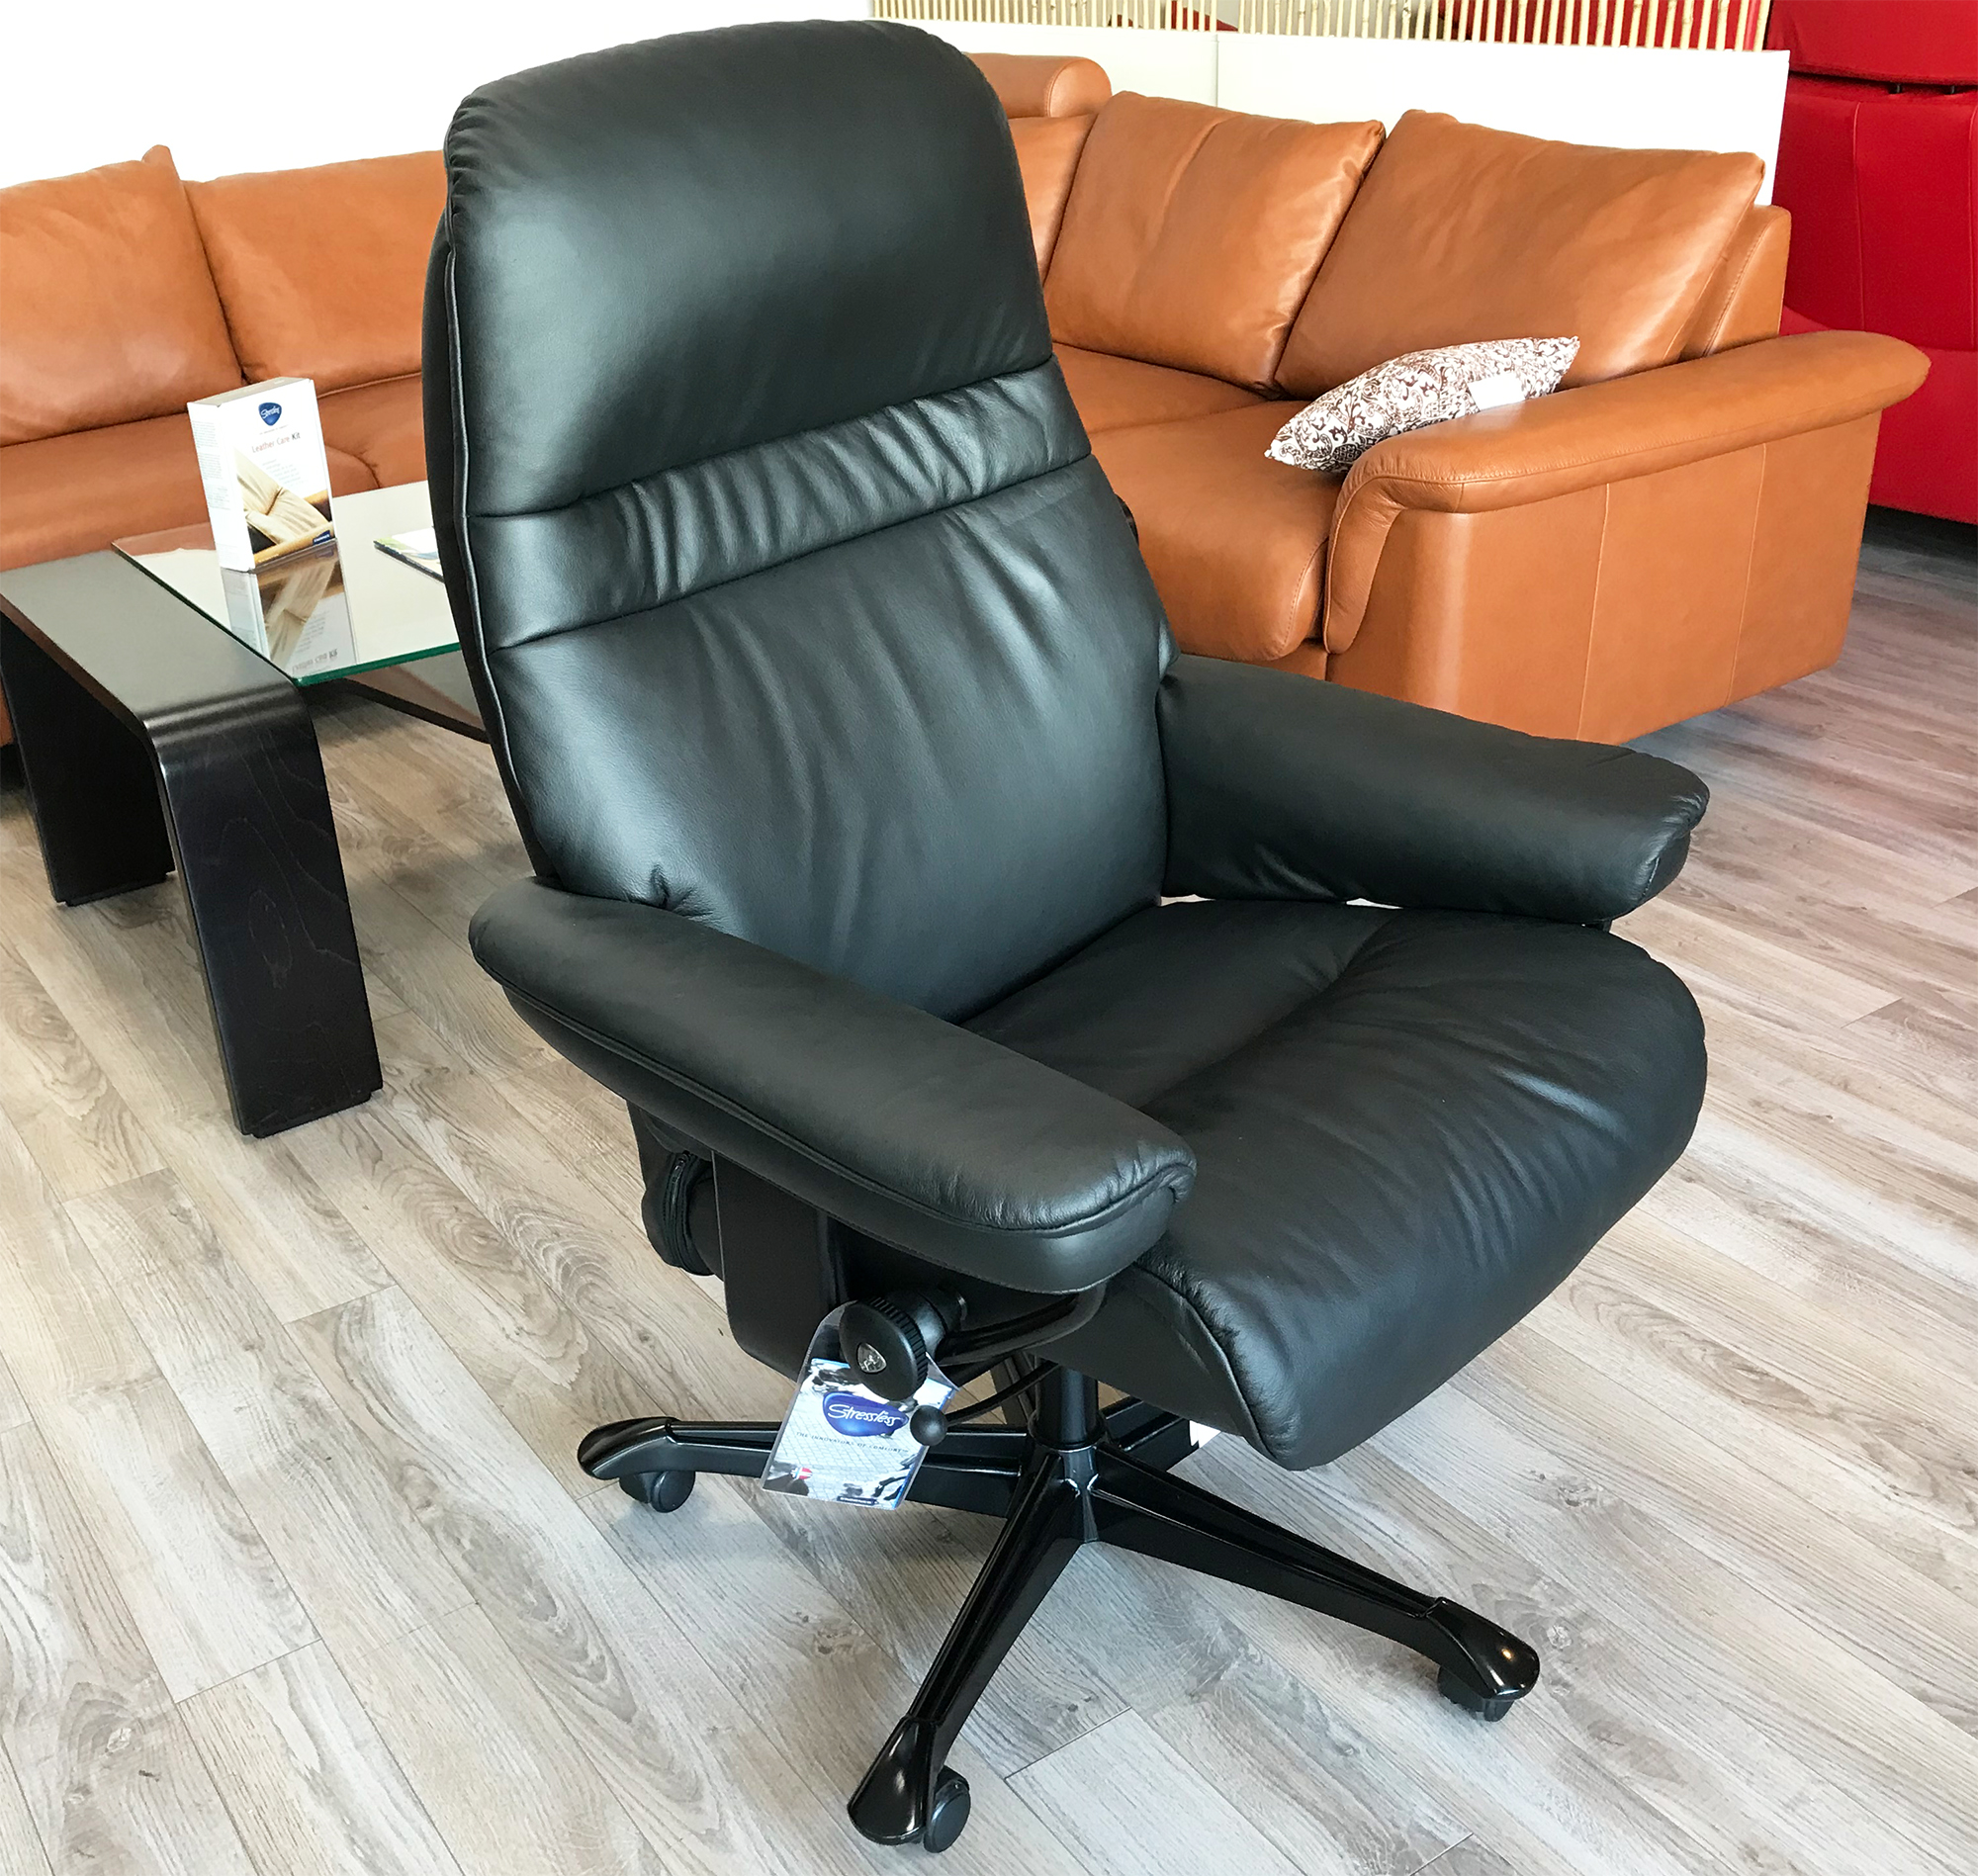 stressless sunrise office desk chair paloma black leather by ekornes